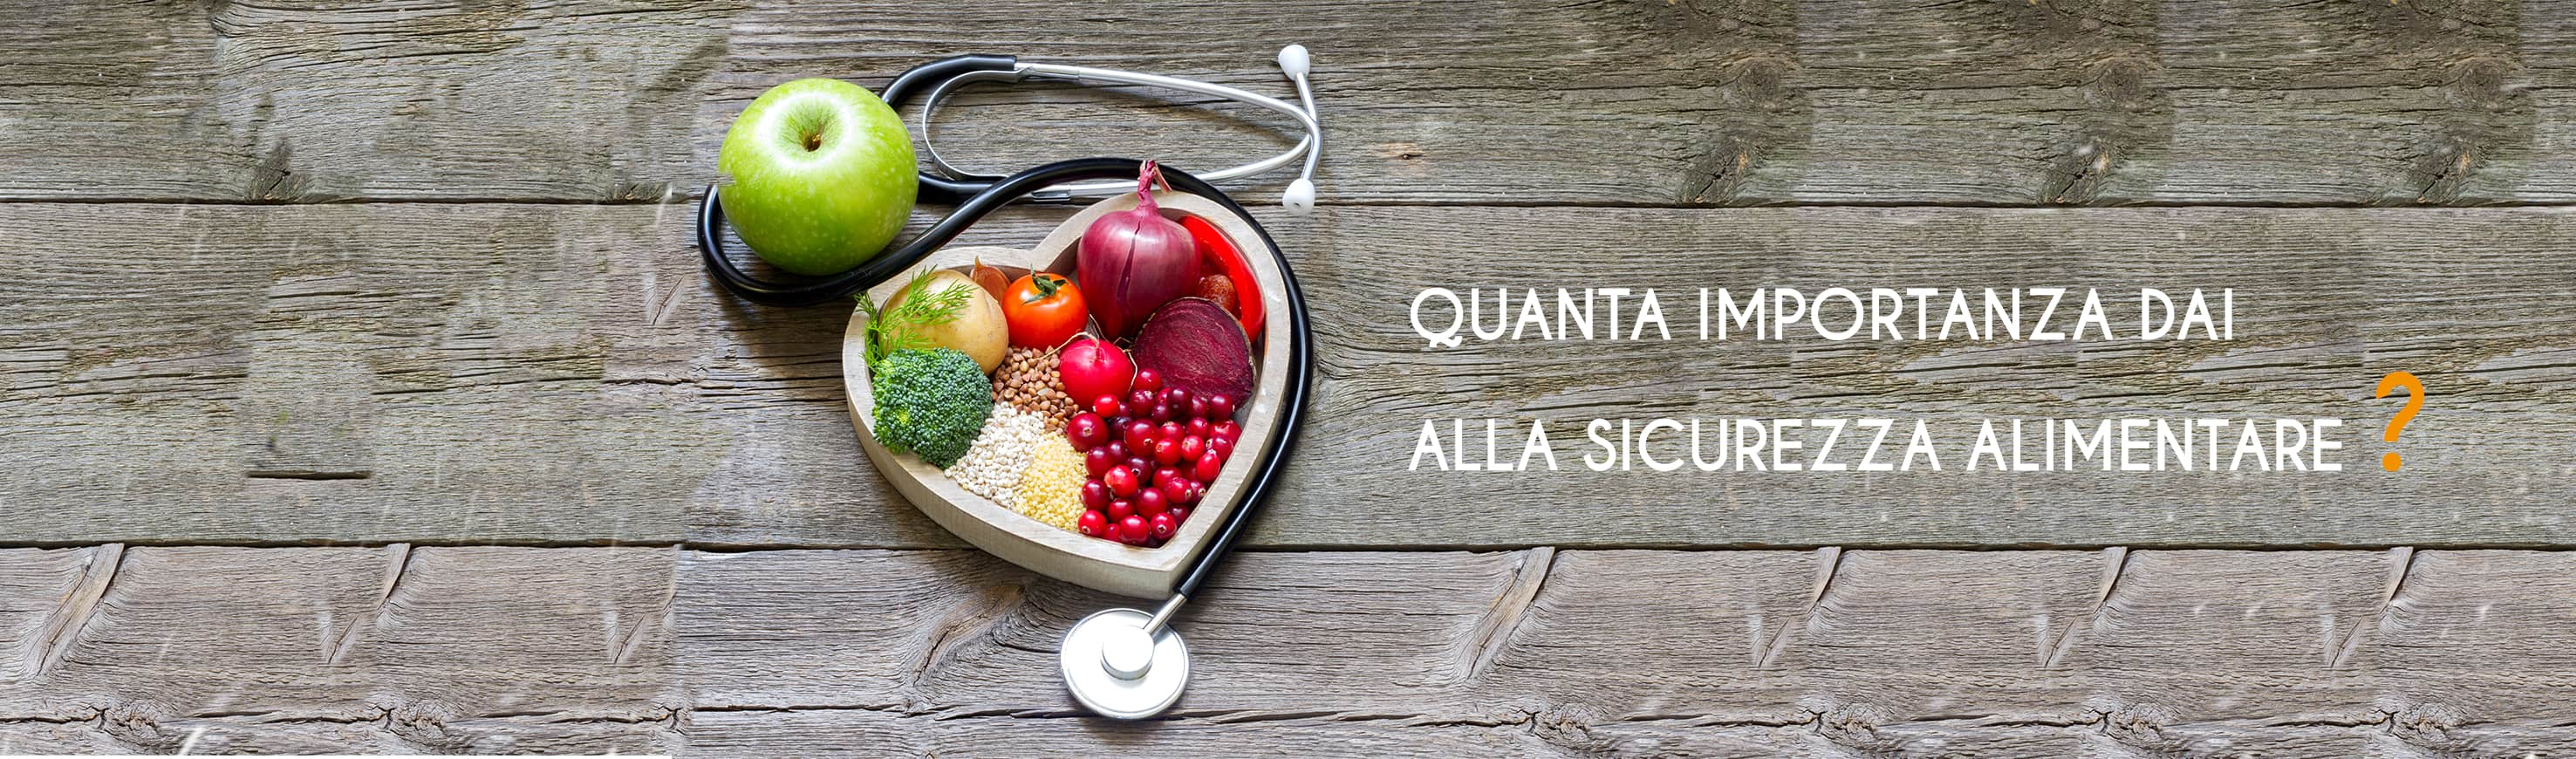 sicurezza alimentare blog slider